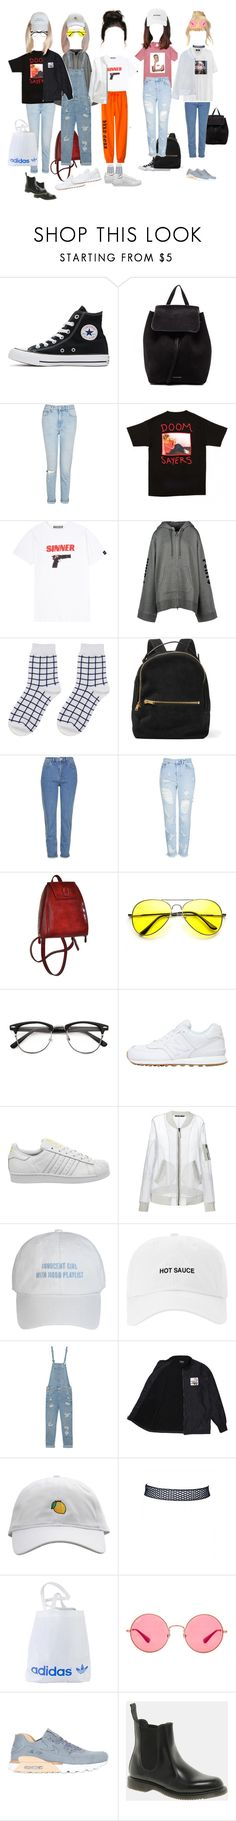 """airport fashion"" by ultjmint ❤ liked on Polyvore featuring Converse, Mansur Gavriel, Topshop, Hyein Seo, Puma, Gucci, Sophie Hulme, New Balance, adidas and BLK DNM"